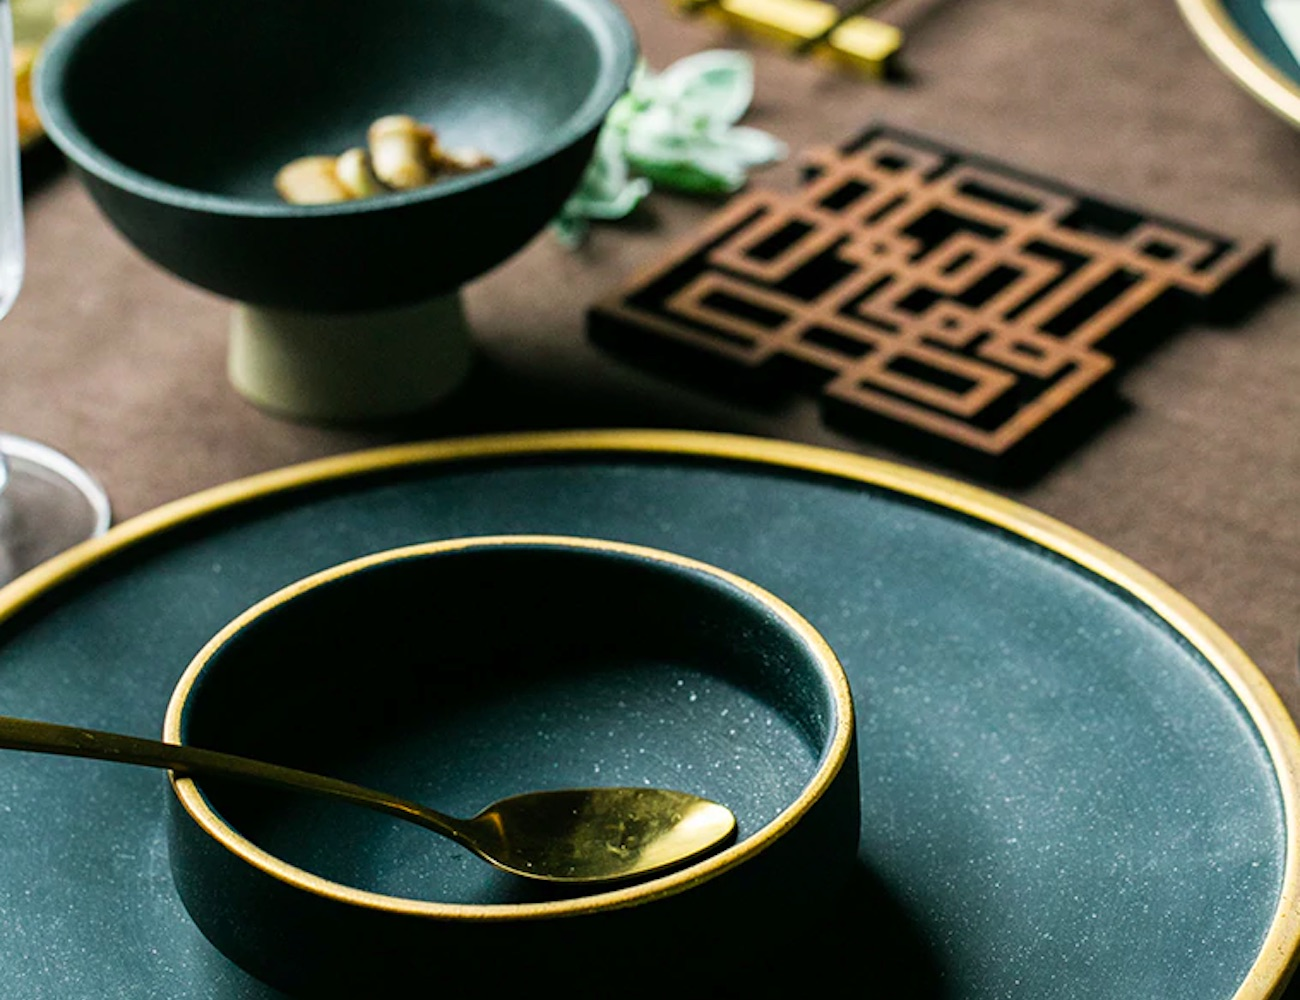 Ceramic Gold Inlay Dining Dishes add a pop of color and style